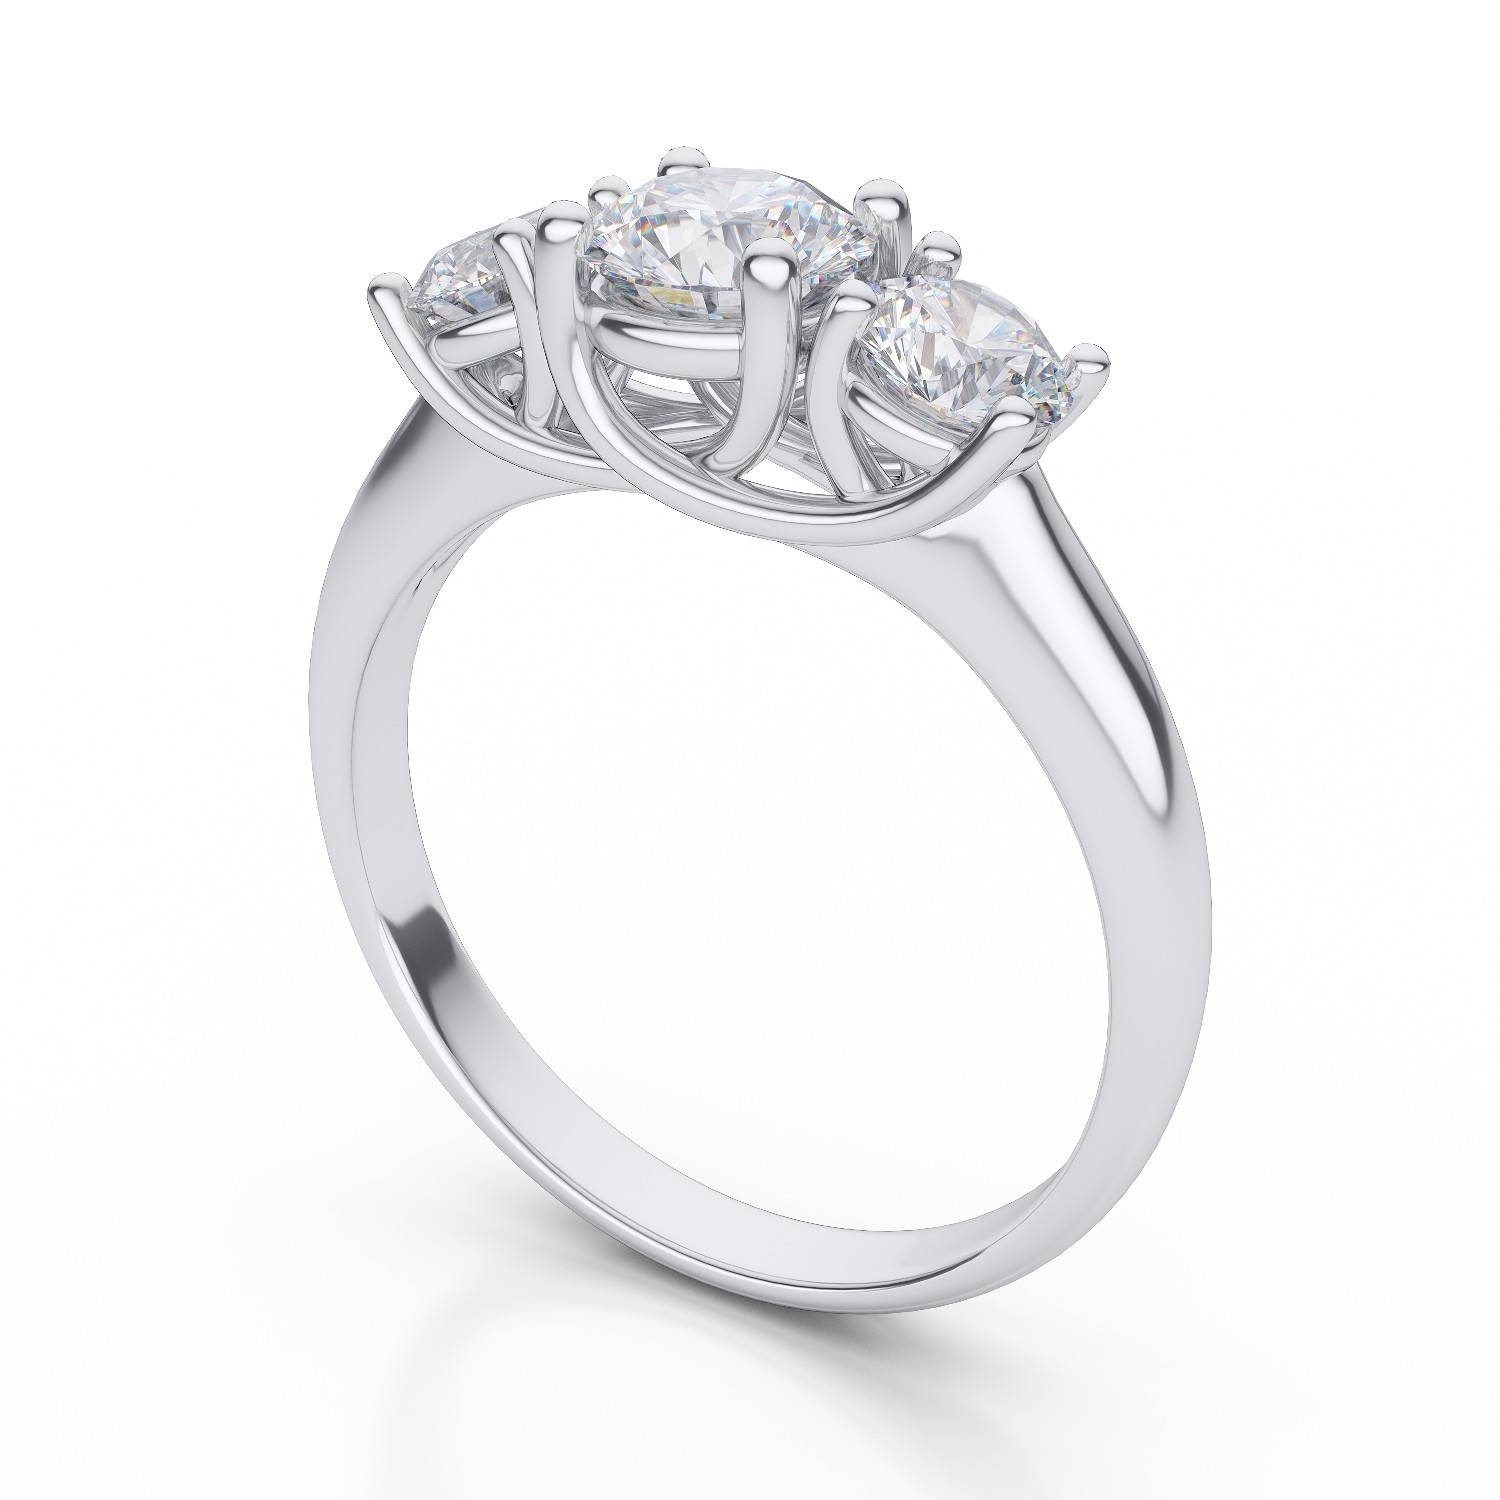 Trellis Diamond Ring | Wedding, Promise, Diamond, Engagement Rings Regarding Best And Newest 3 Diamond Anniversary Rings (View 17 of 25)